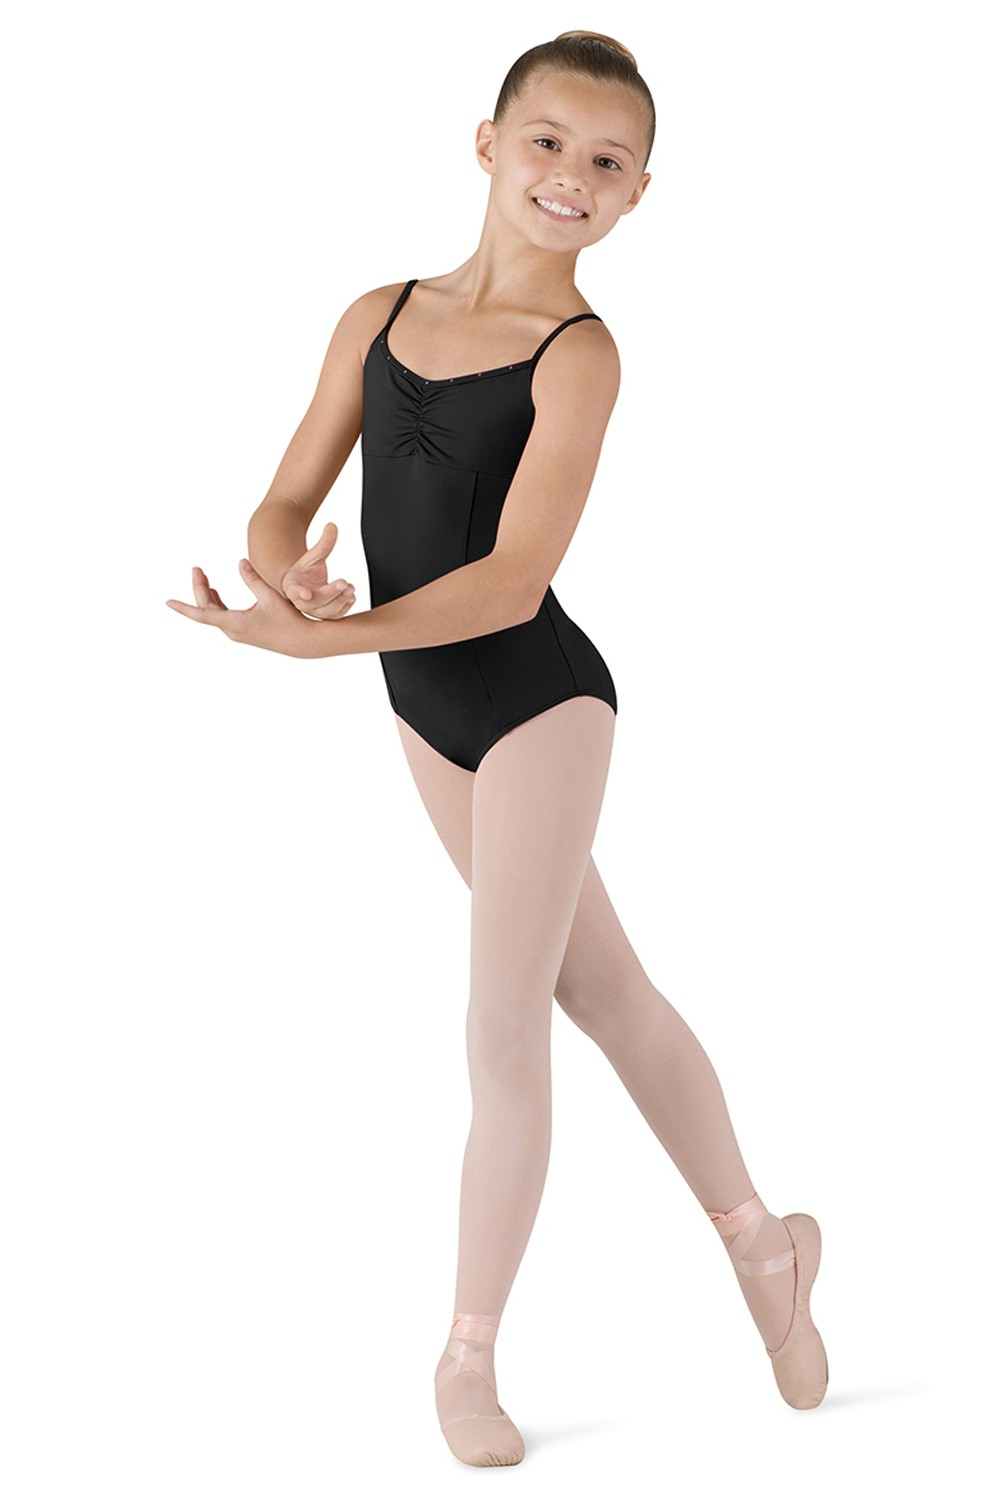 Sugar Children's Dance Leotards